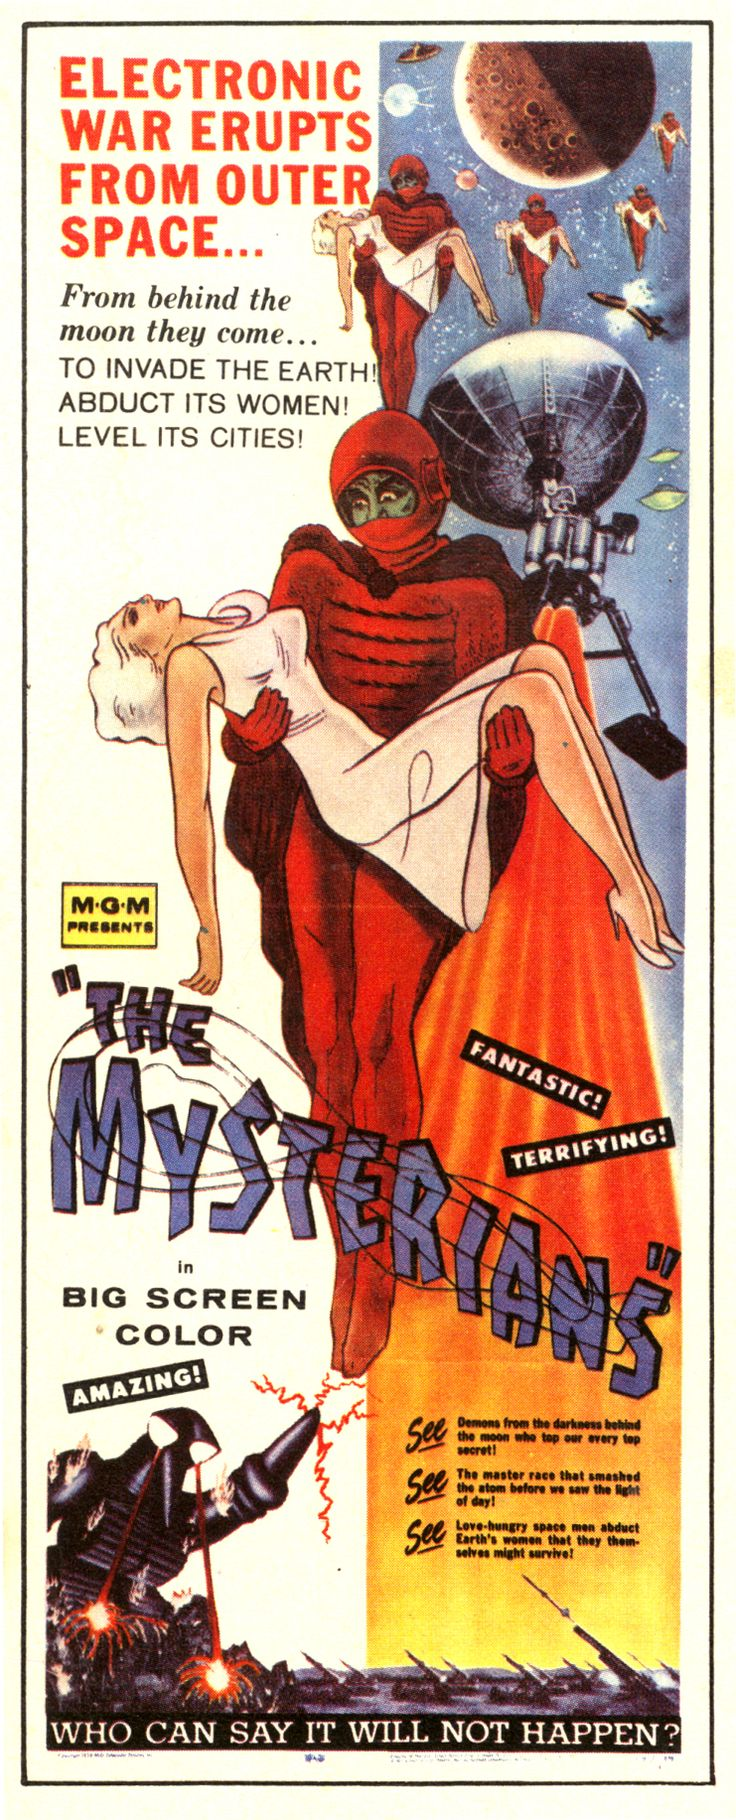 The Mysterians - From Behind the Moon They Come...To Invade the Earth! Abduct Its Women! Level Its Cities!